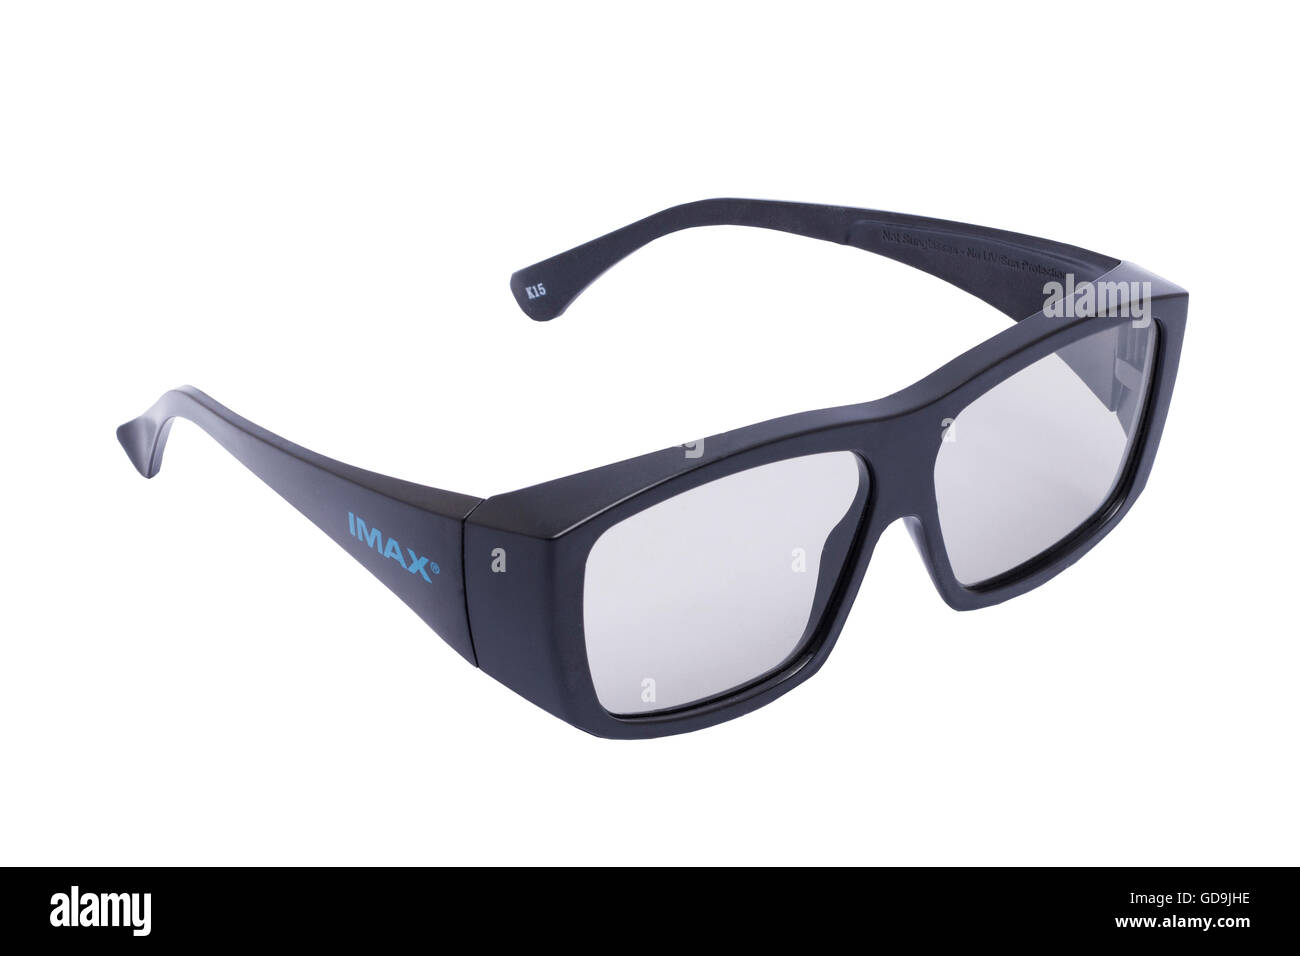 A pair of imax 3d cinema glasses on a white background - Stock Image